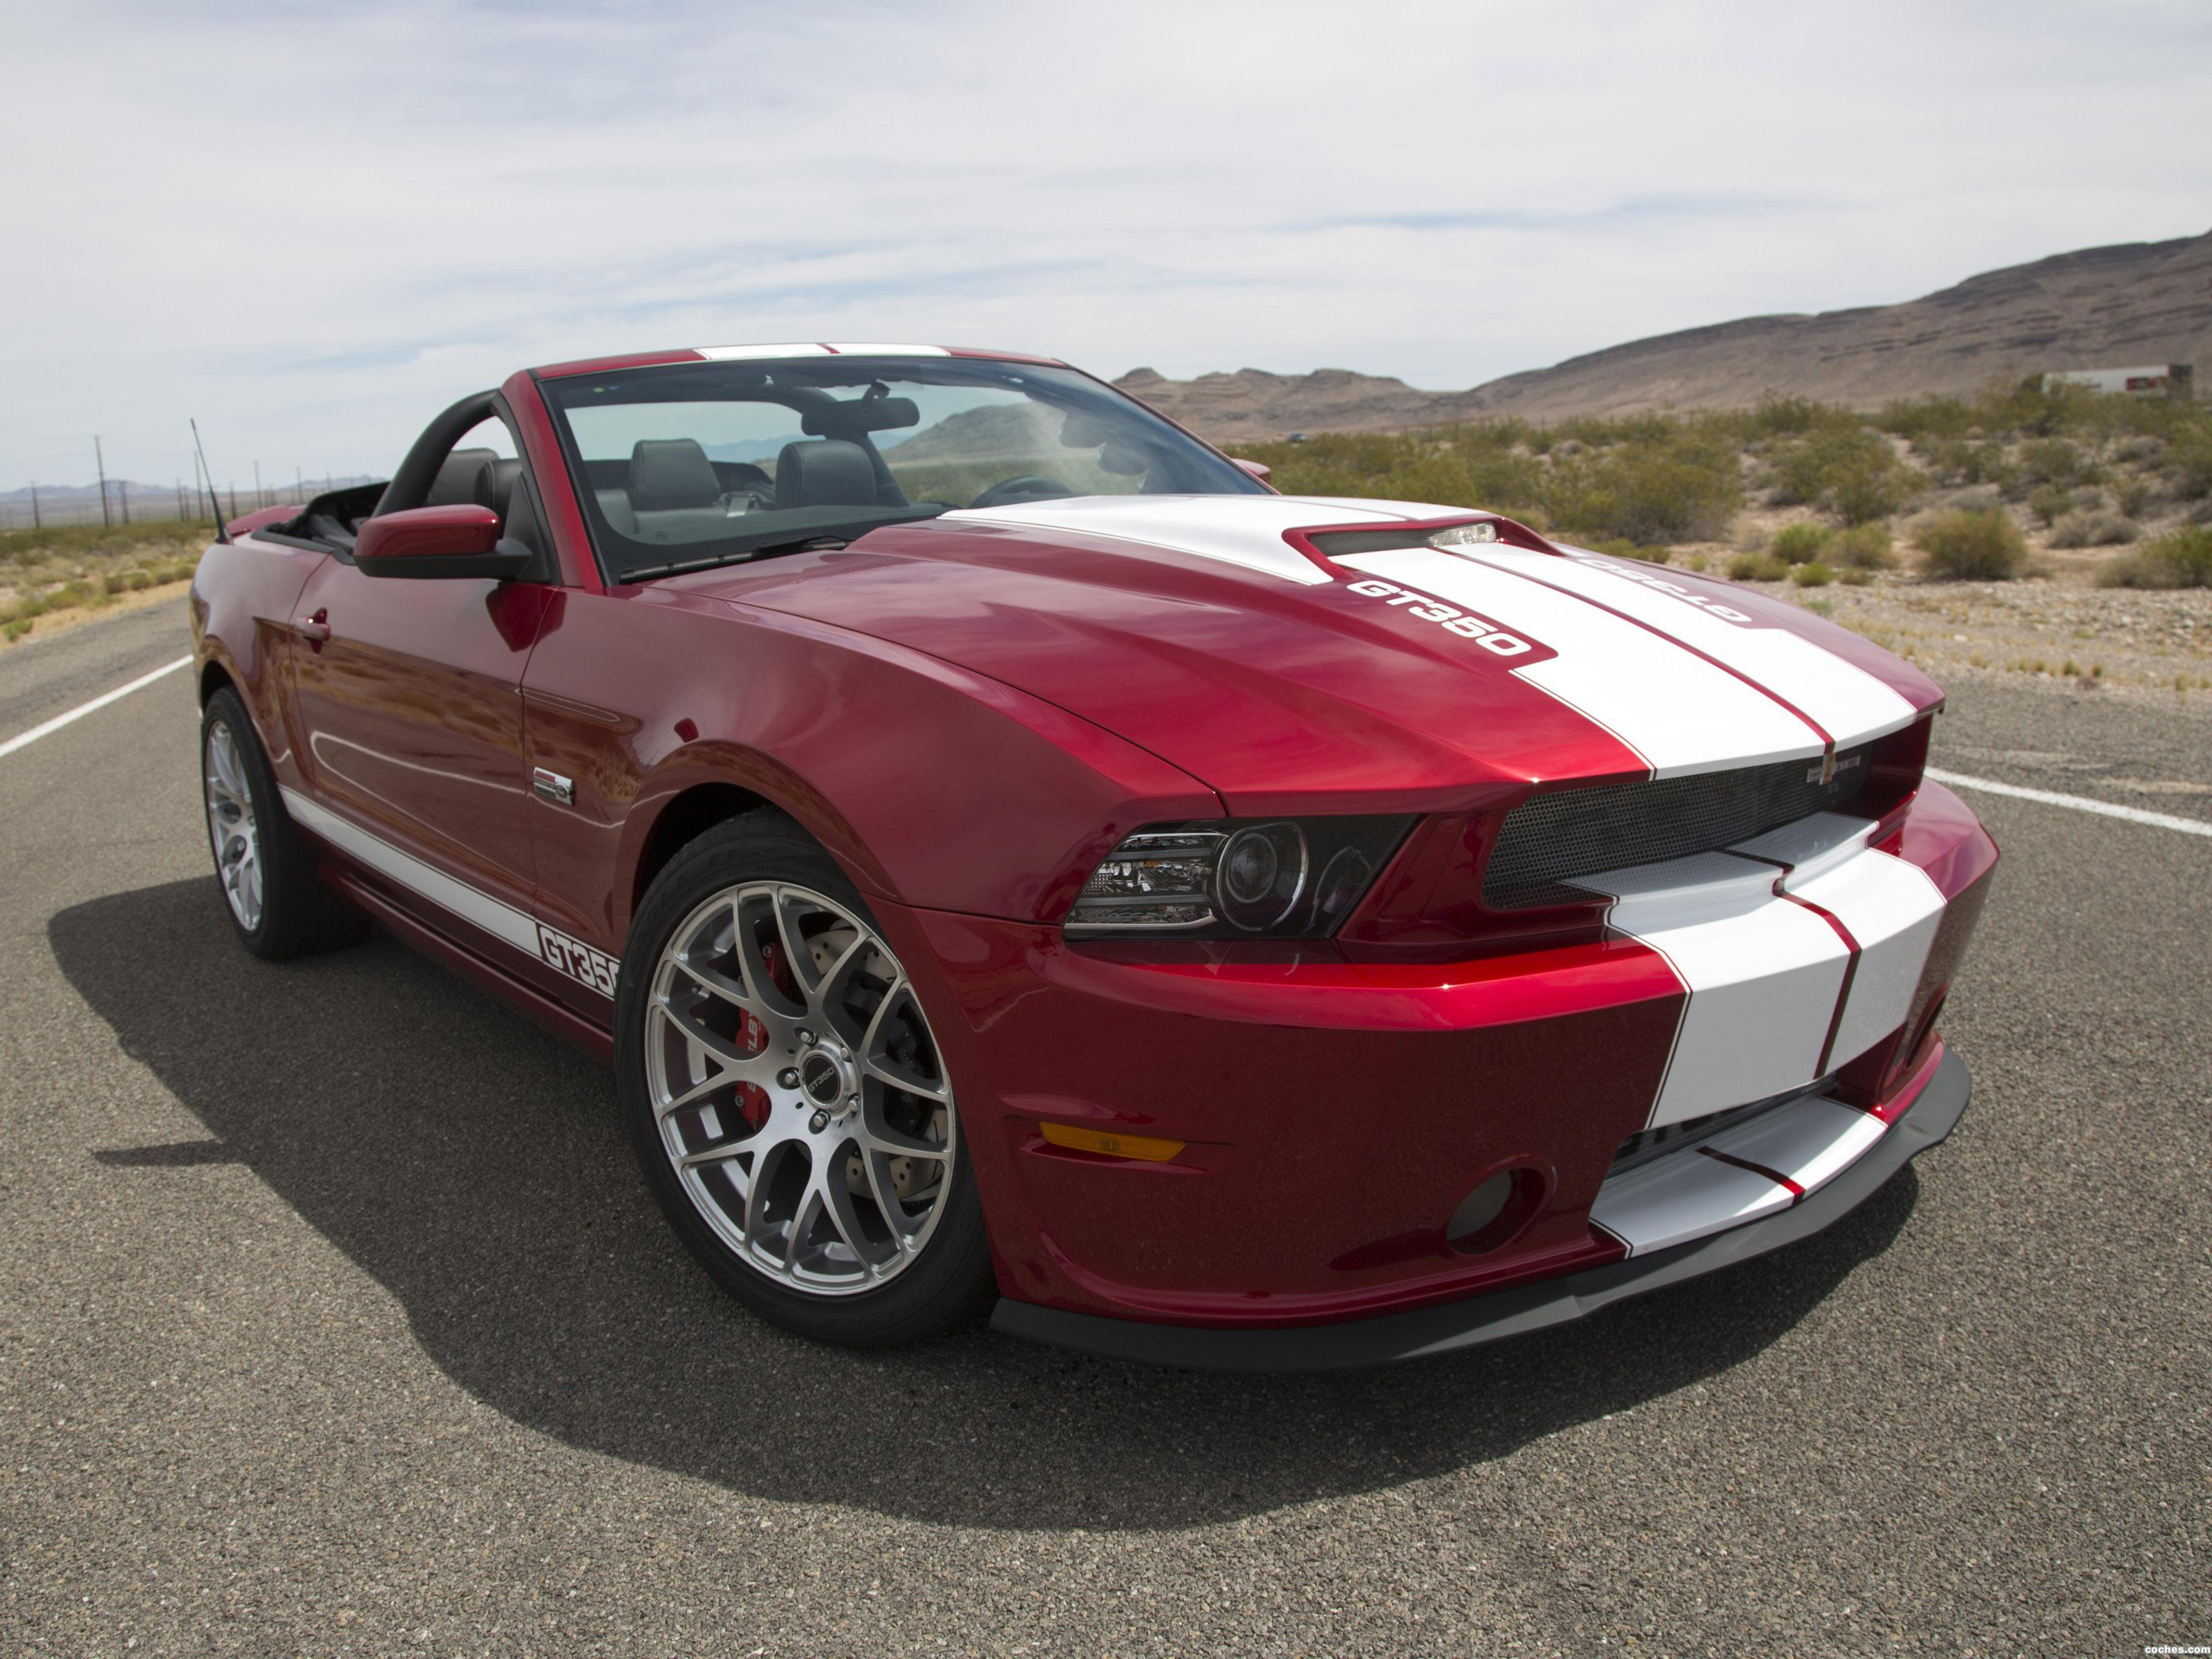 shelby_ford-mustang-gt350-convertible-2013_r3.jpg